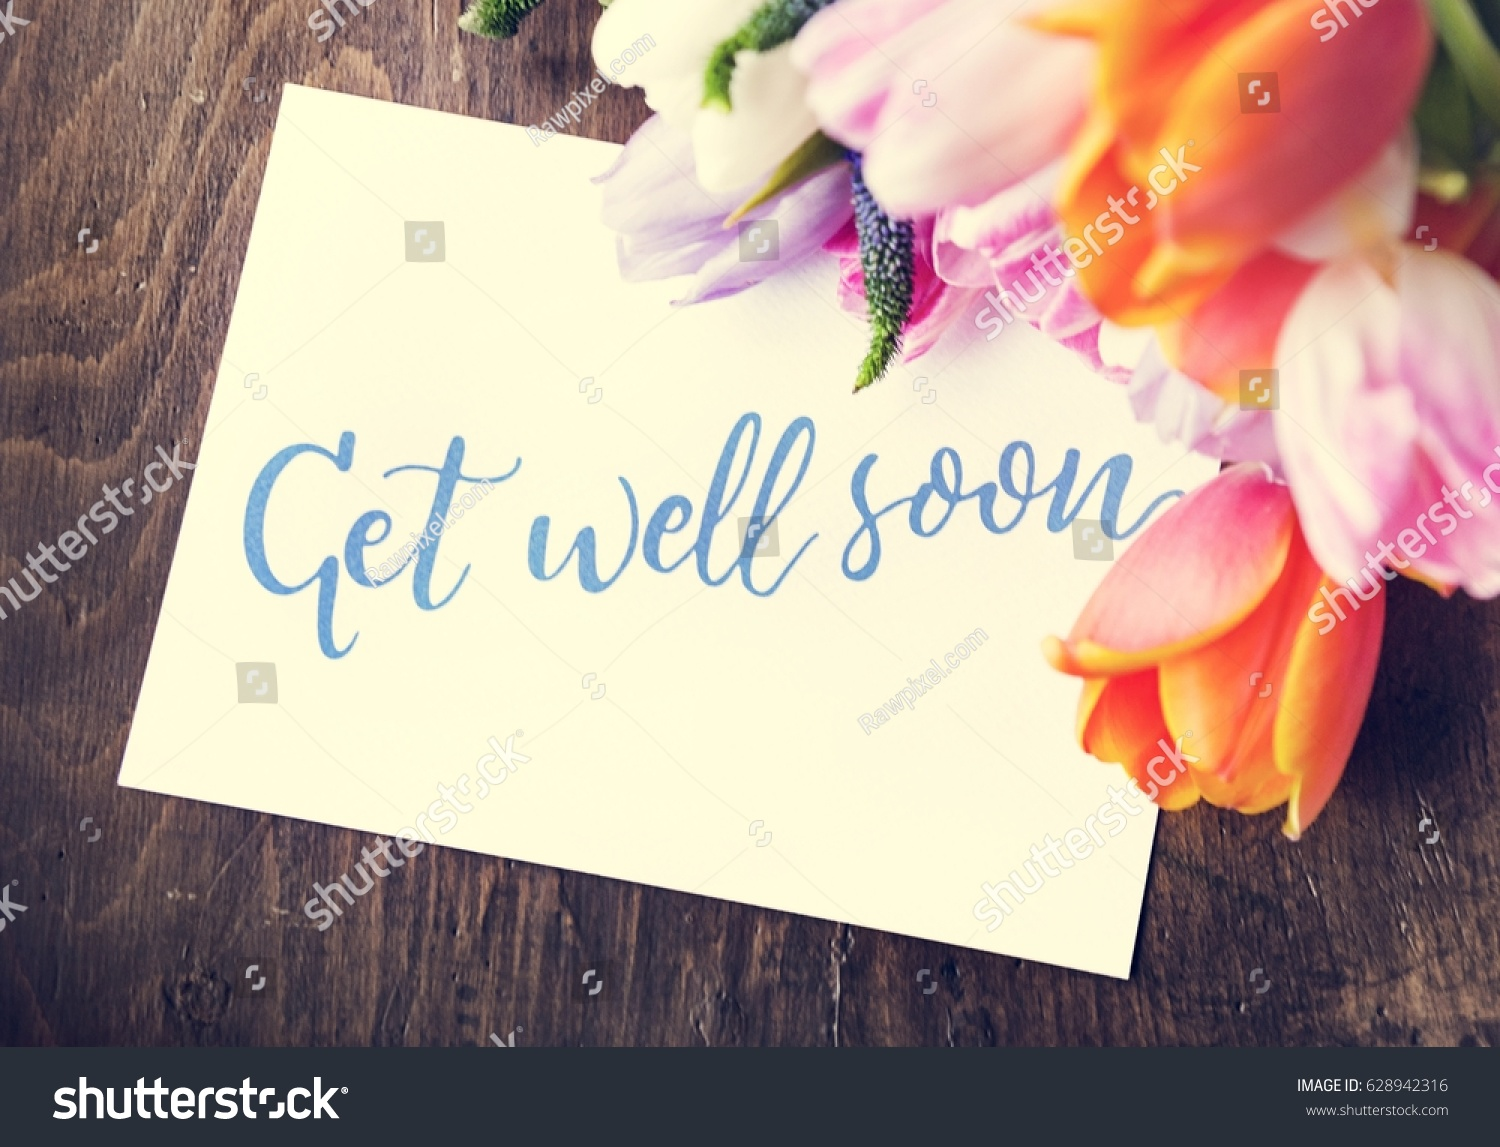 Tulips Flowers Bouquet Get Well Soon Stock Photo (Edit Now ...